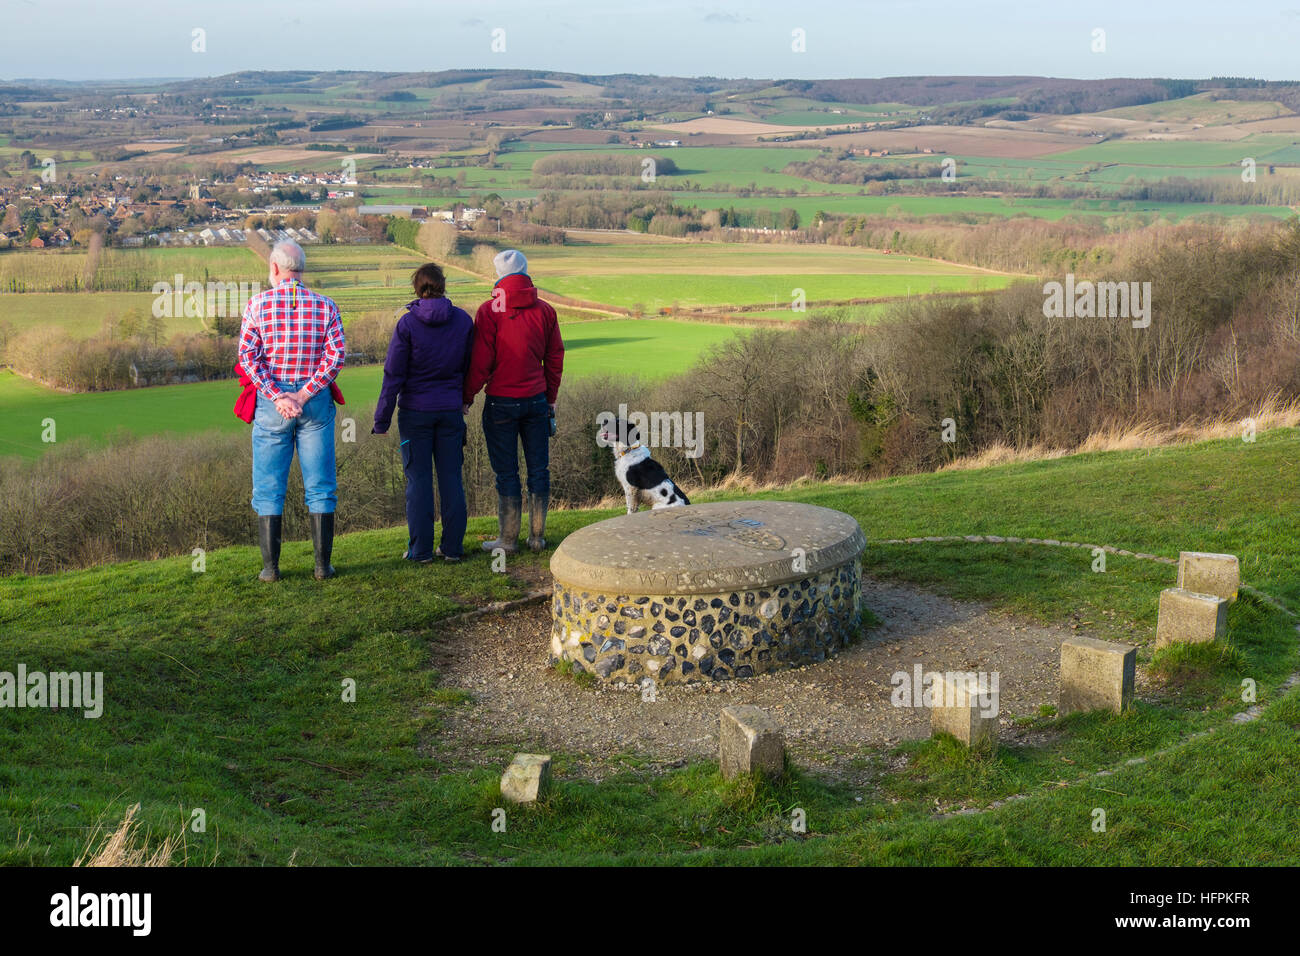 People looking at view of countryside by Wye Crown Millennium stone in Wye National Nature Reserve on North Downs - Stock Image